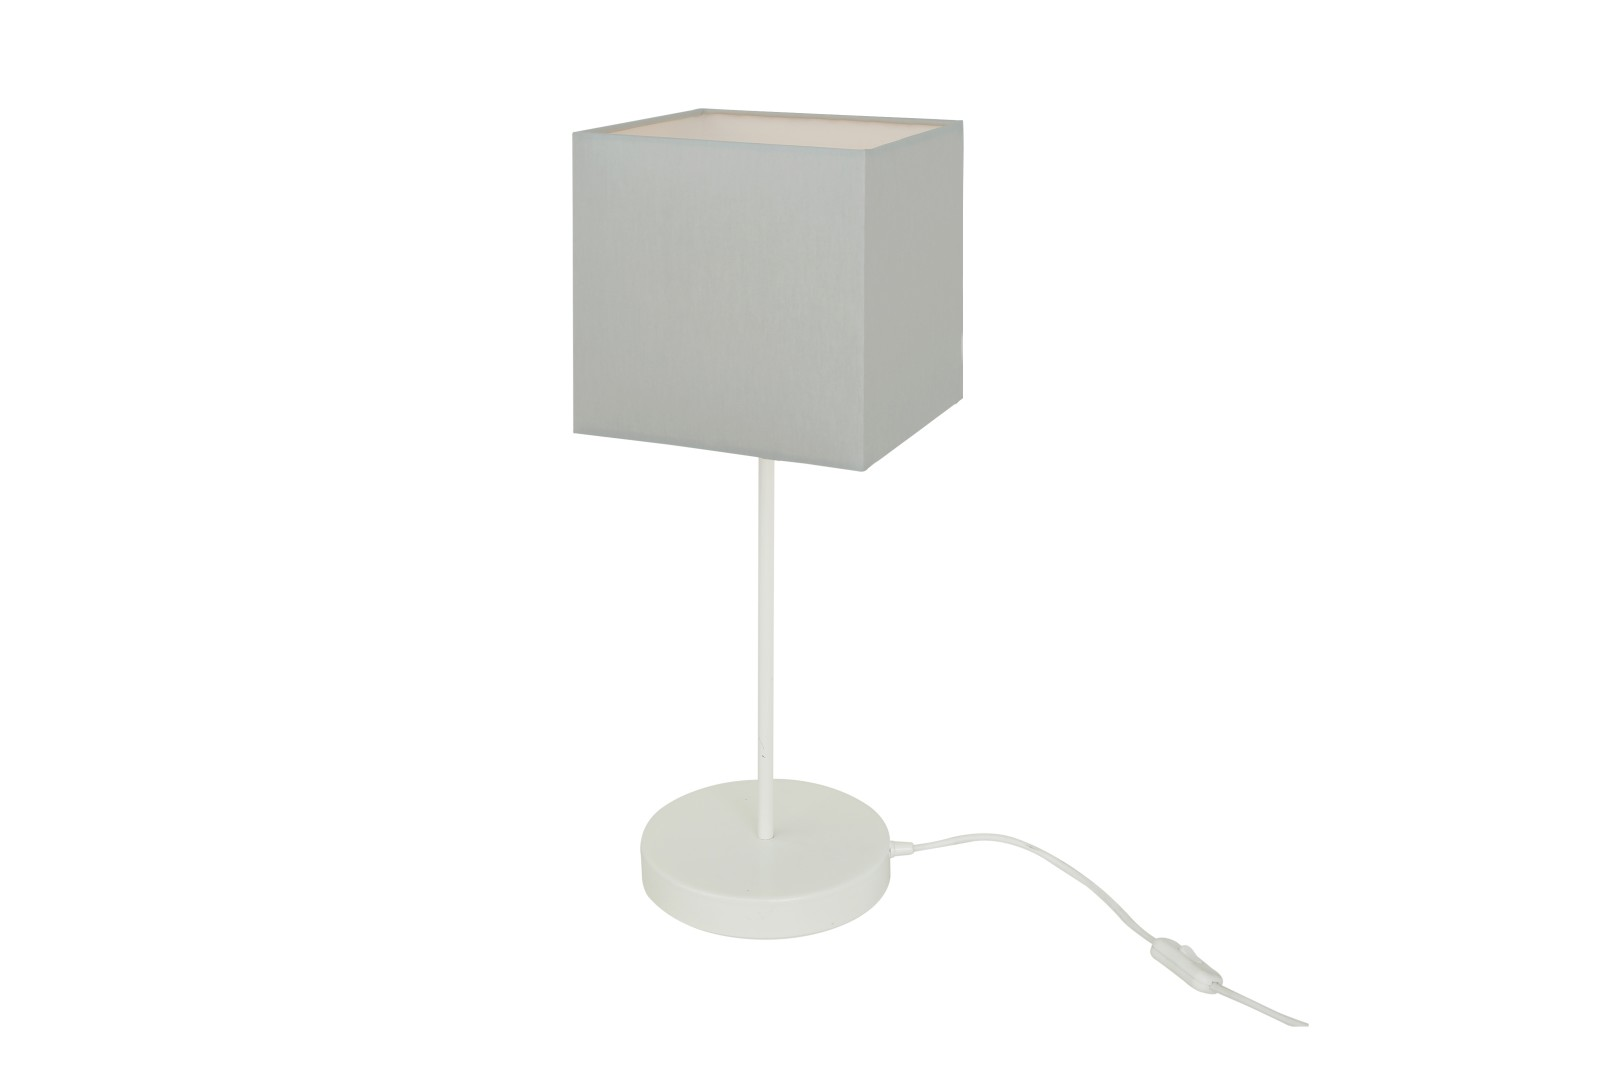 Bedal Table Lamp Powder Coated White, UK Plug